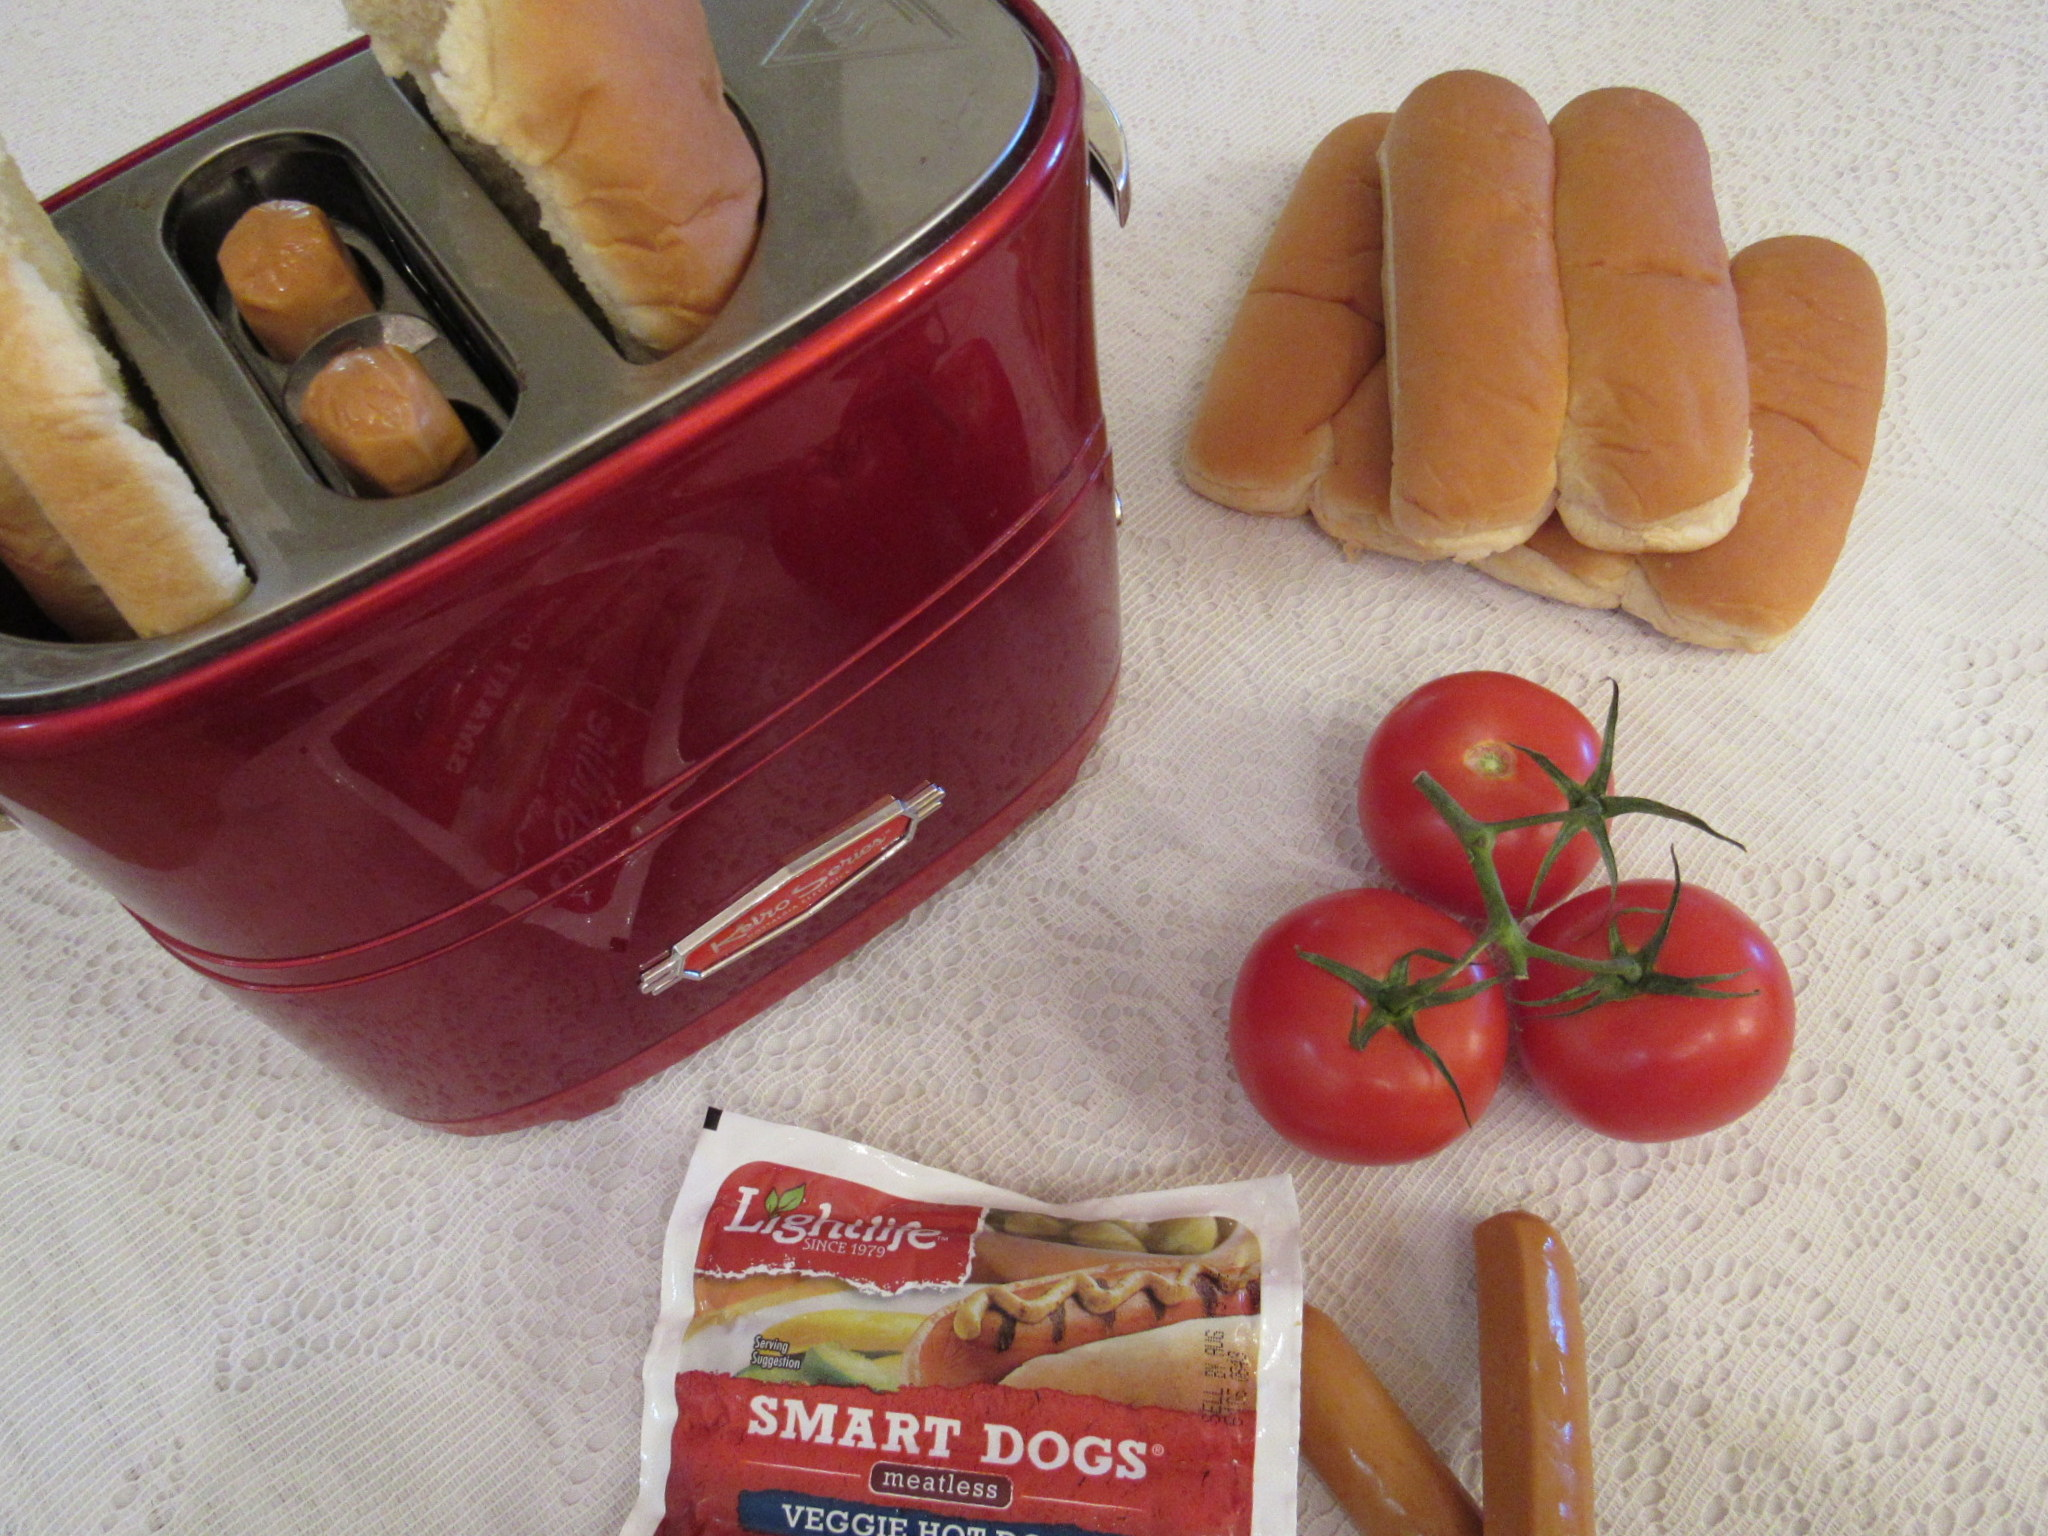 30 Minute Wholesome Summer Lunch, Lightlife Smart Dogs #MomsMeet